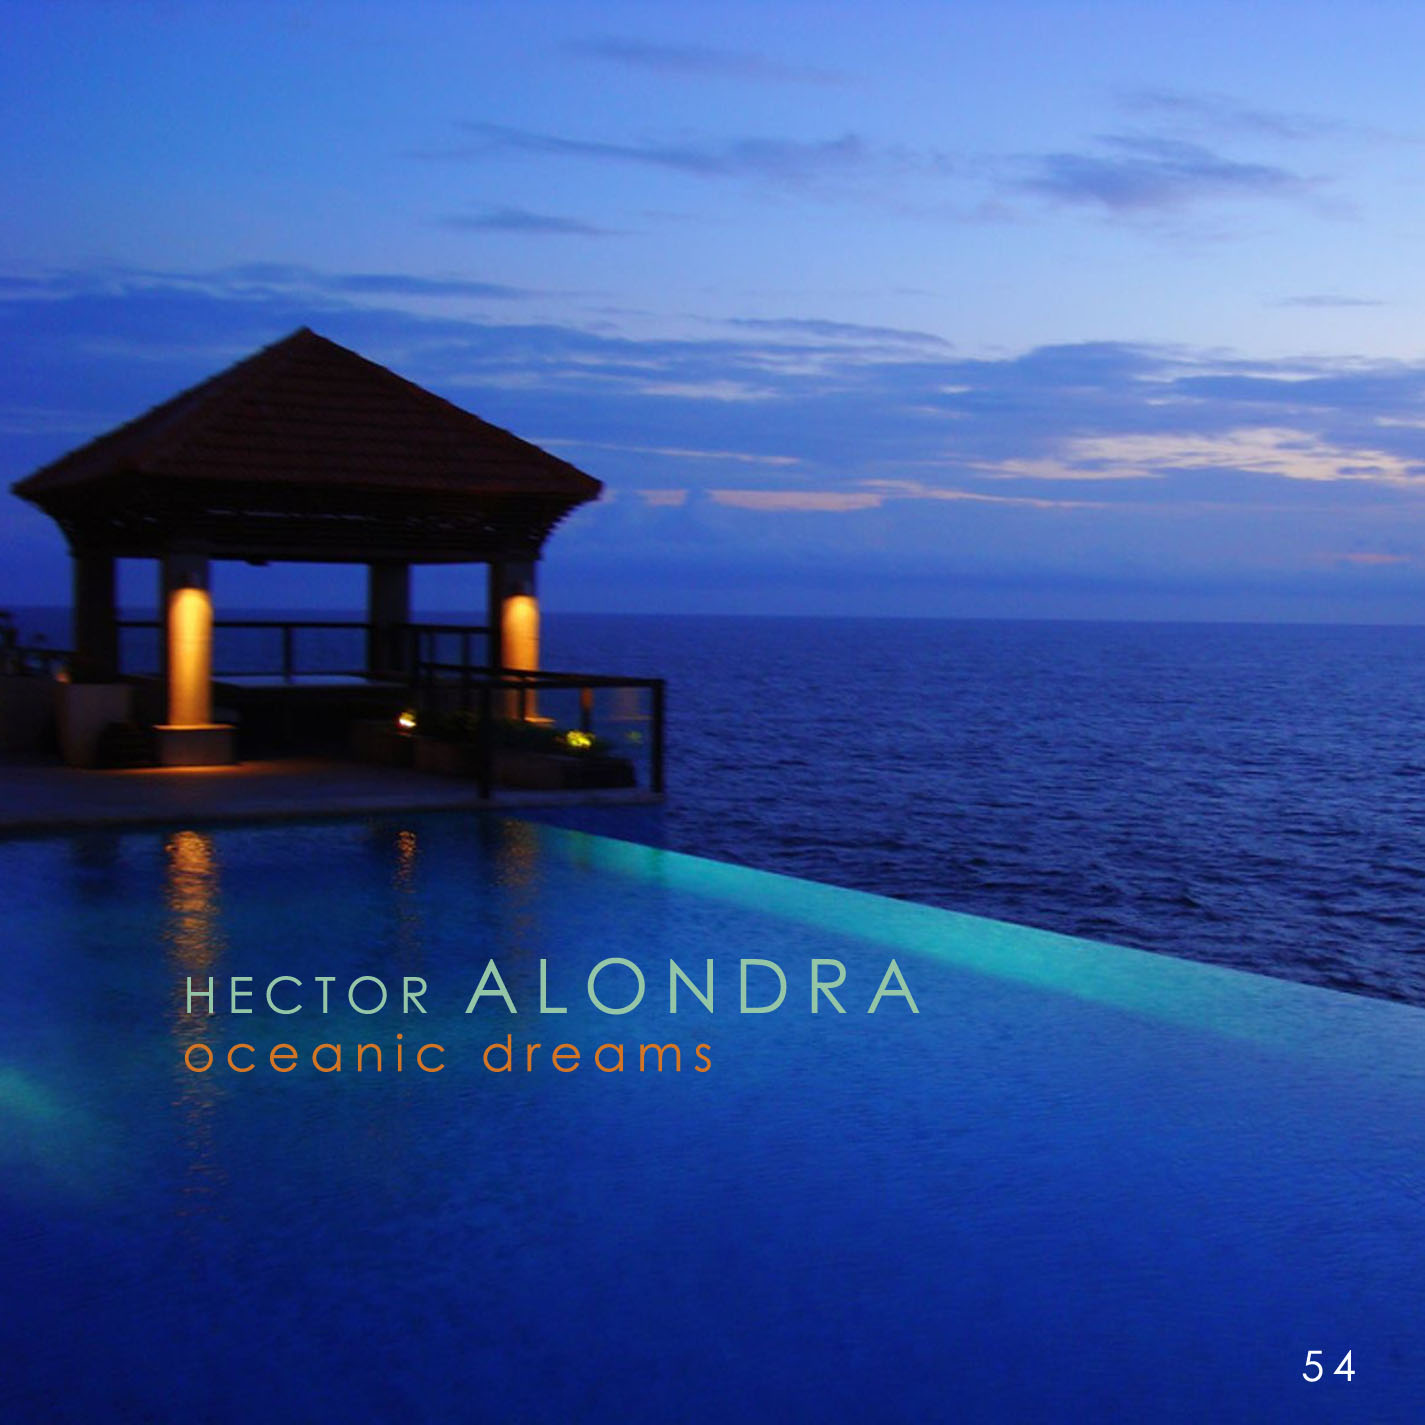 Session 54 - Oceanic Dreams